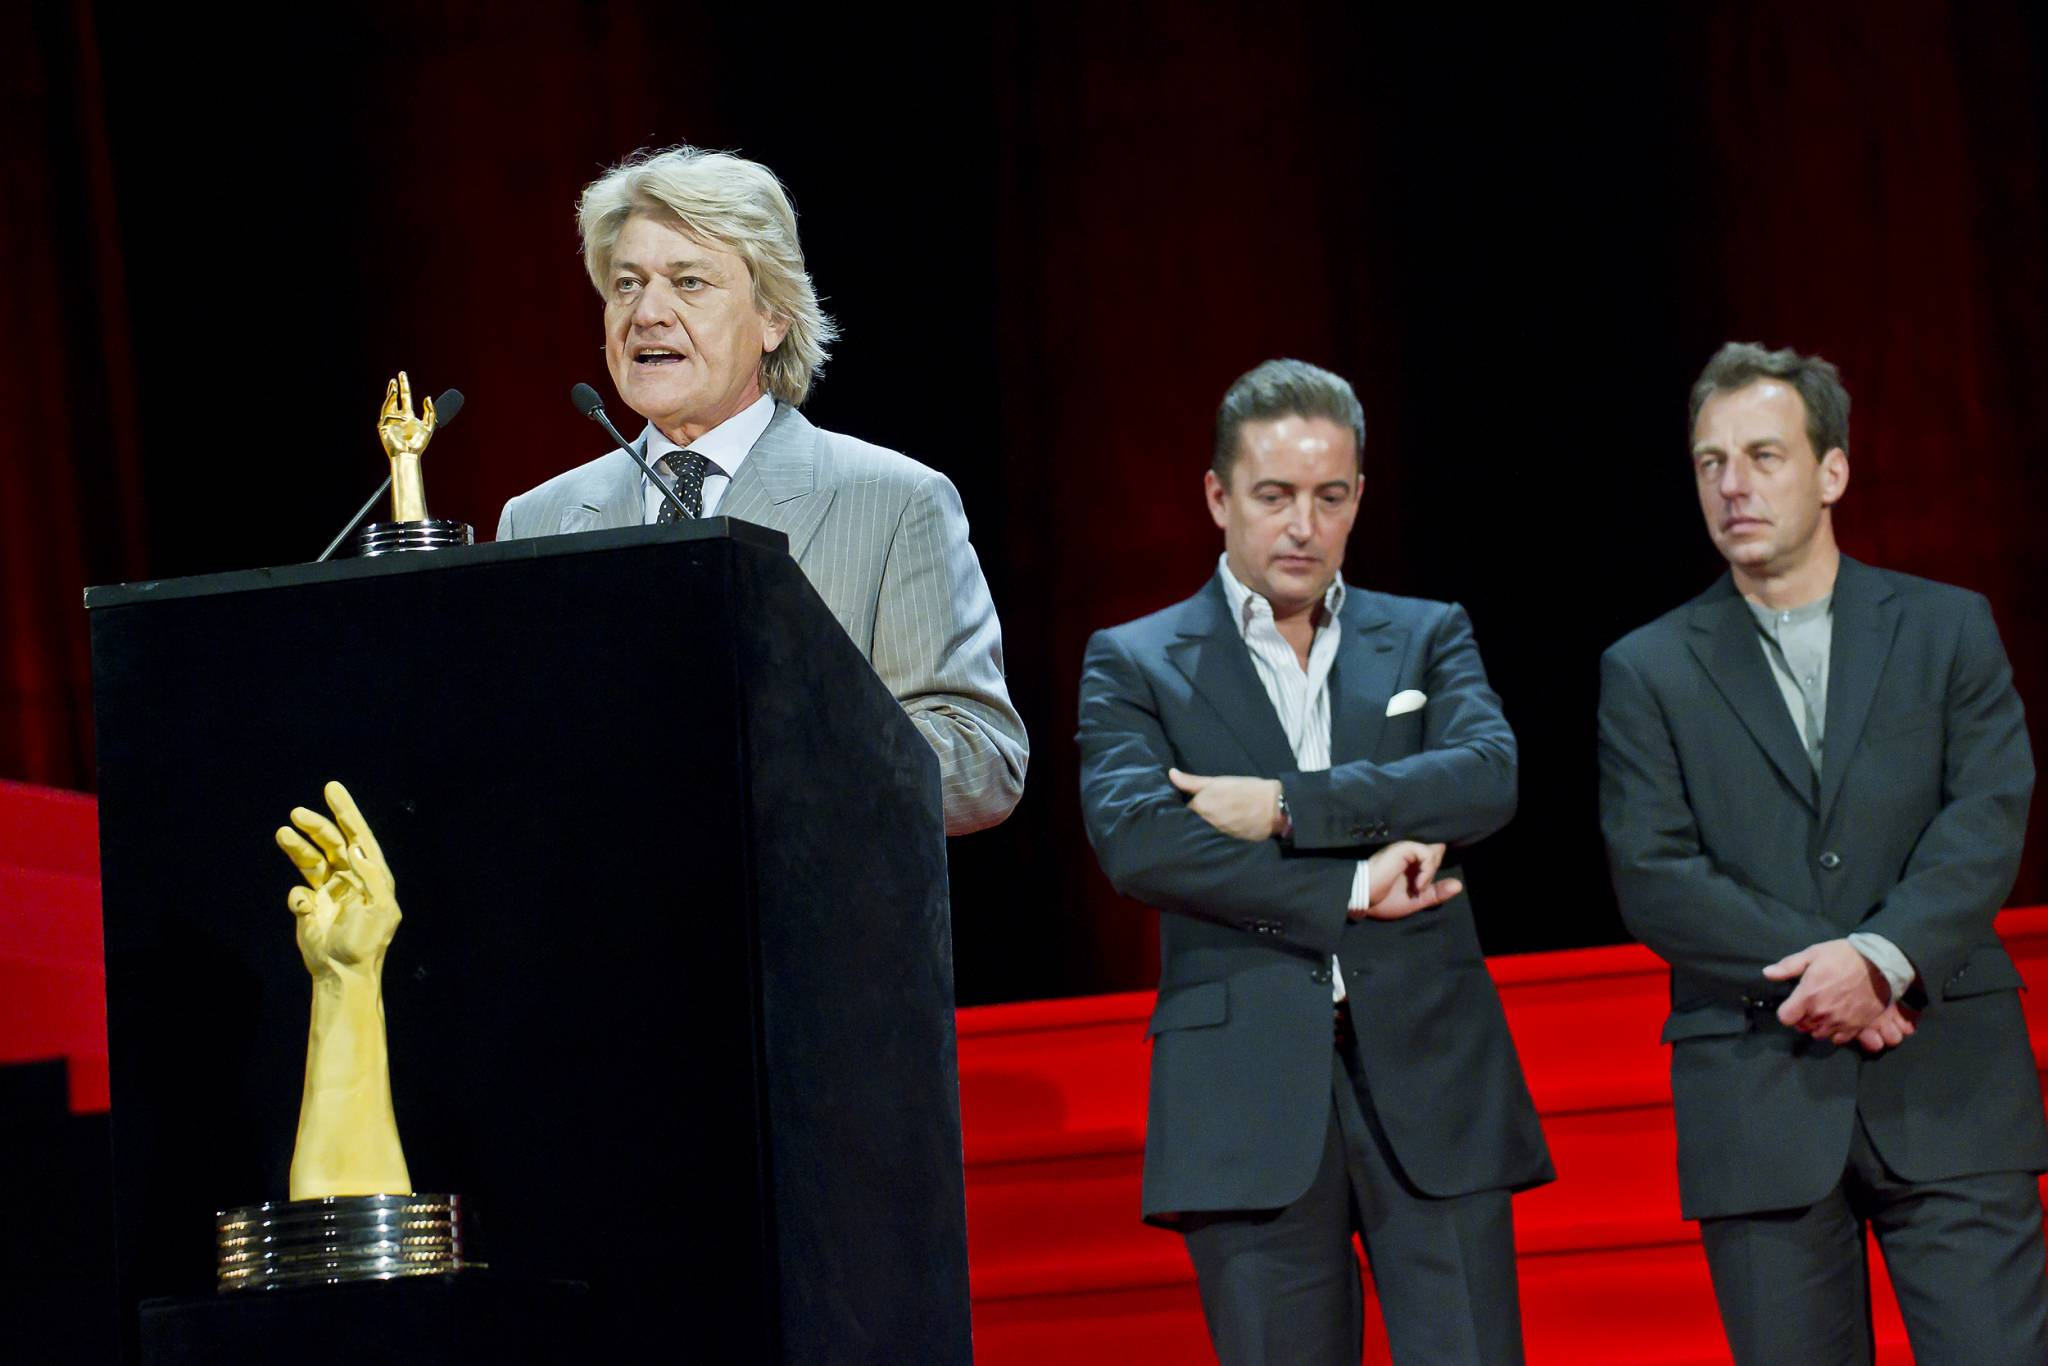 David Zanetta, co-founder of the De Bethune brand, winner of the 2011 Aiguille d'Or Grand Prix, accompanied by Pierre Jacques and Denis Flageollet